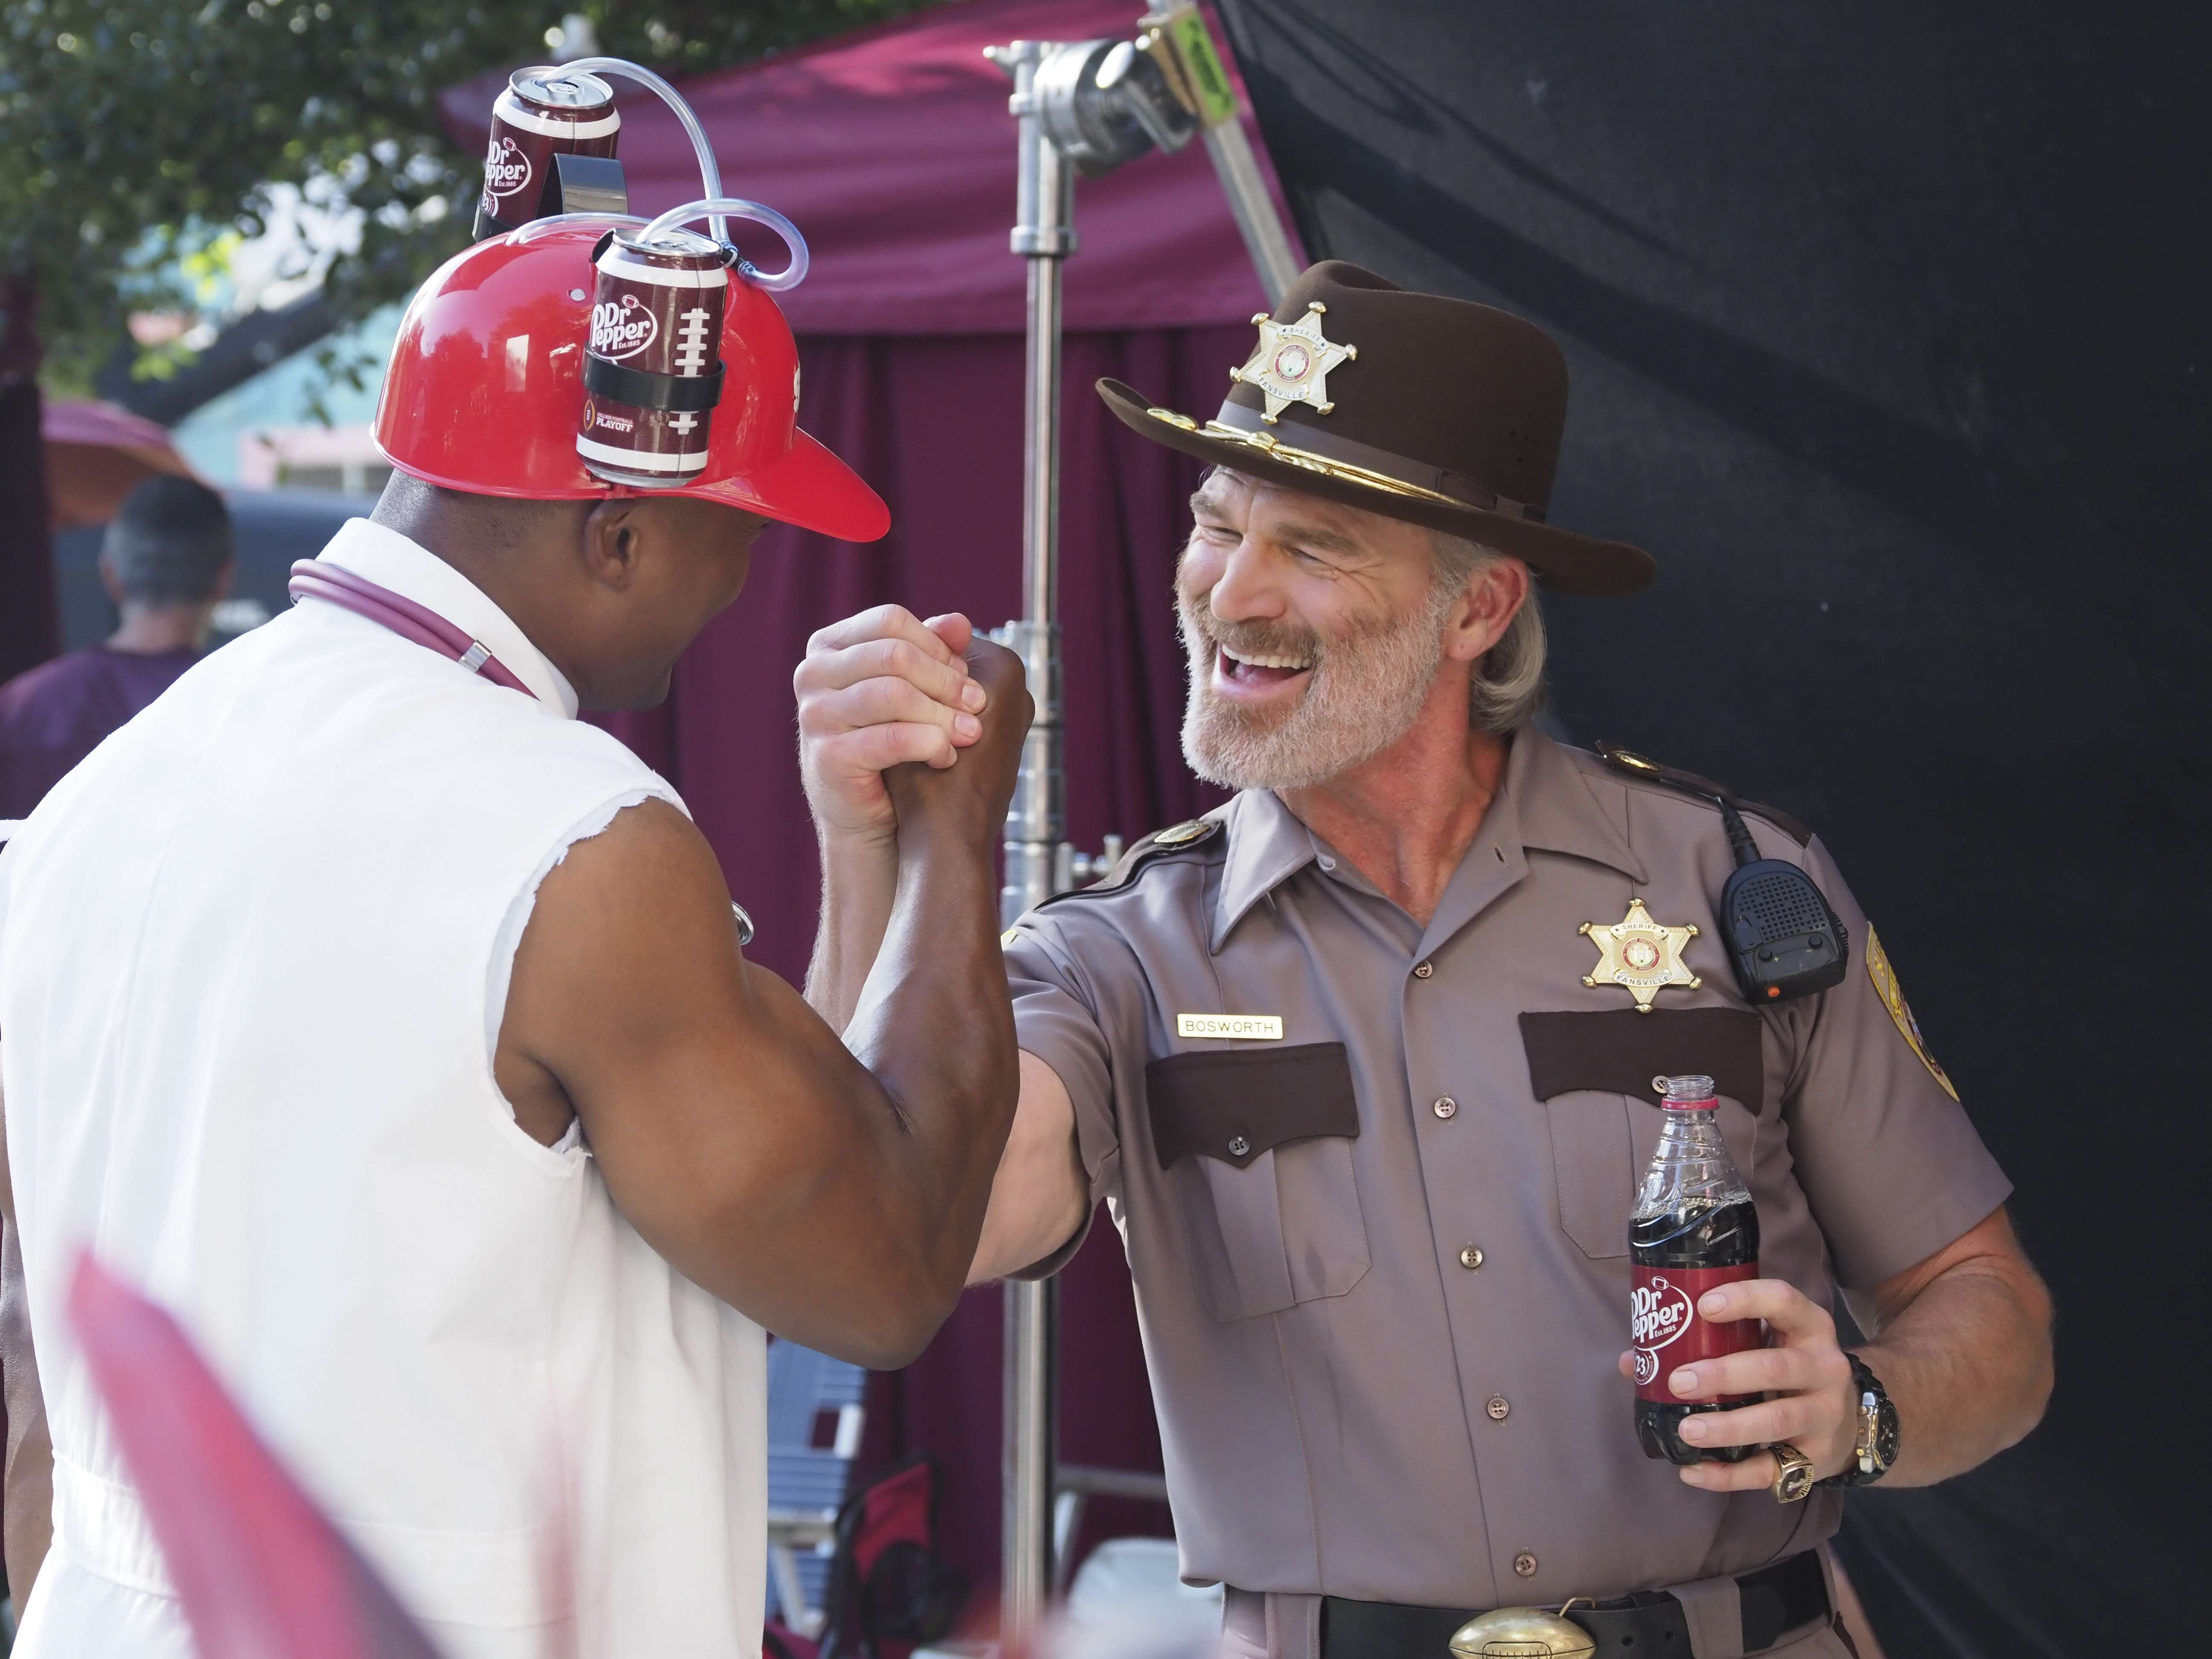 Fansville, Brian Bosworth, Eddie George, Dr. Pepper